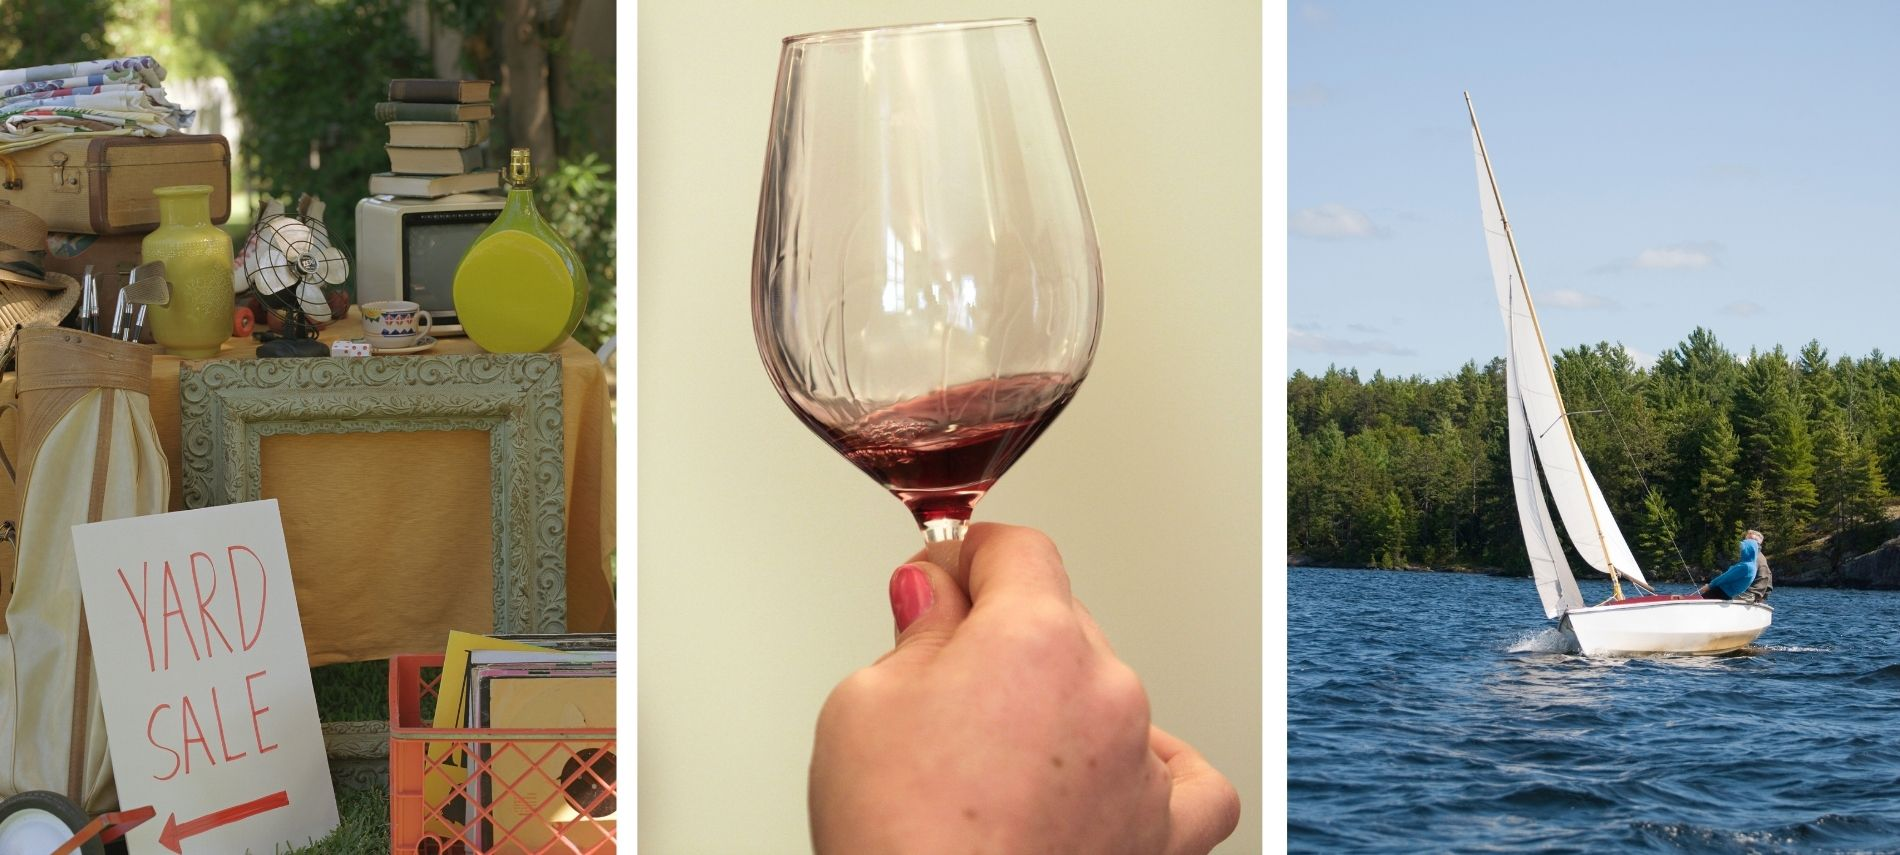 Left to right: yard sale, wine glass, and sailboat